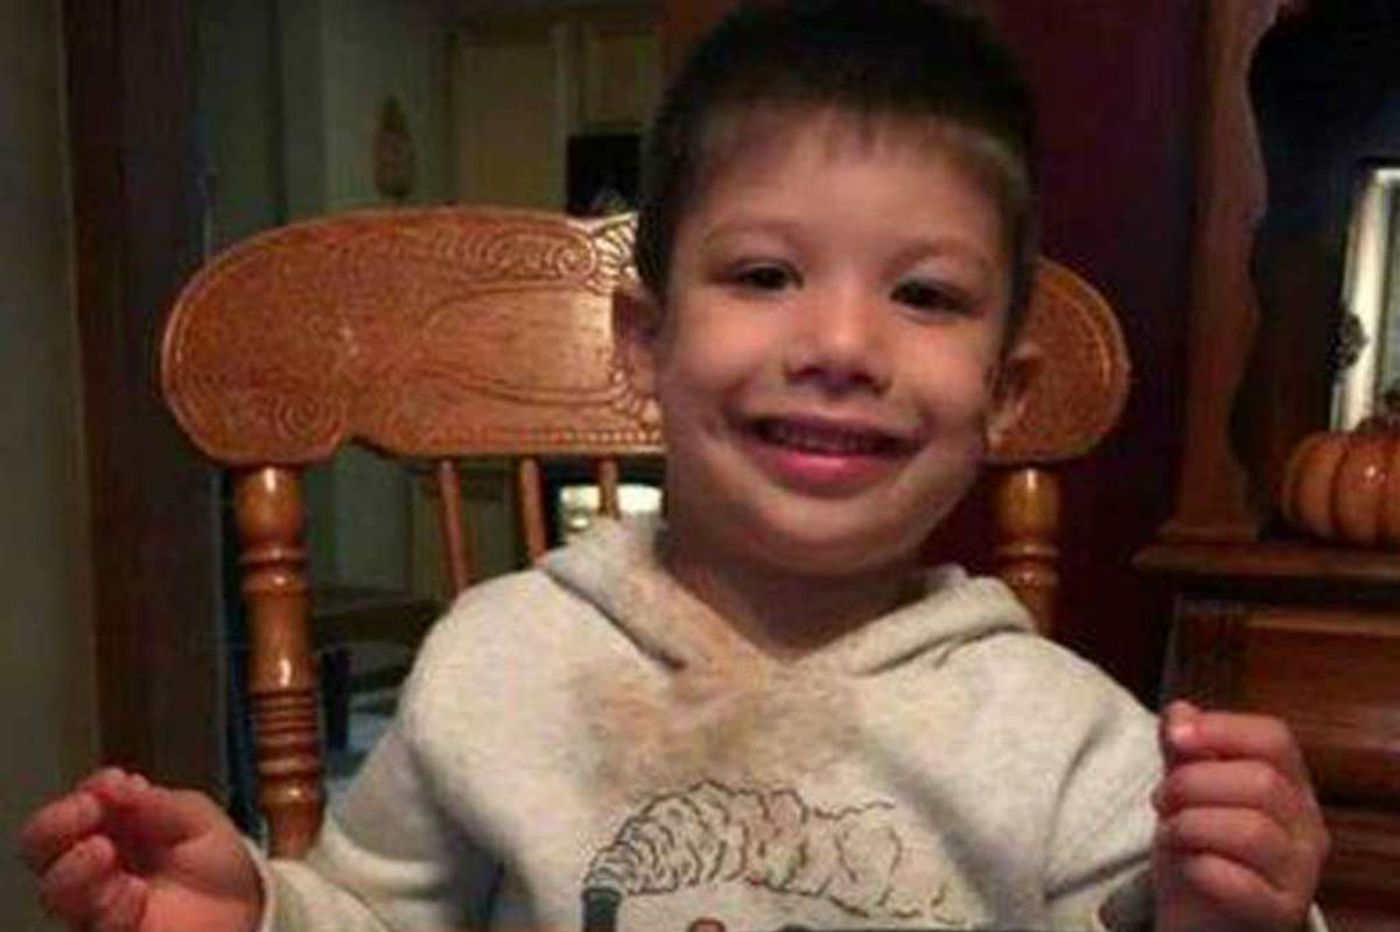 Unknowns in toddler's death continue to frustrate